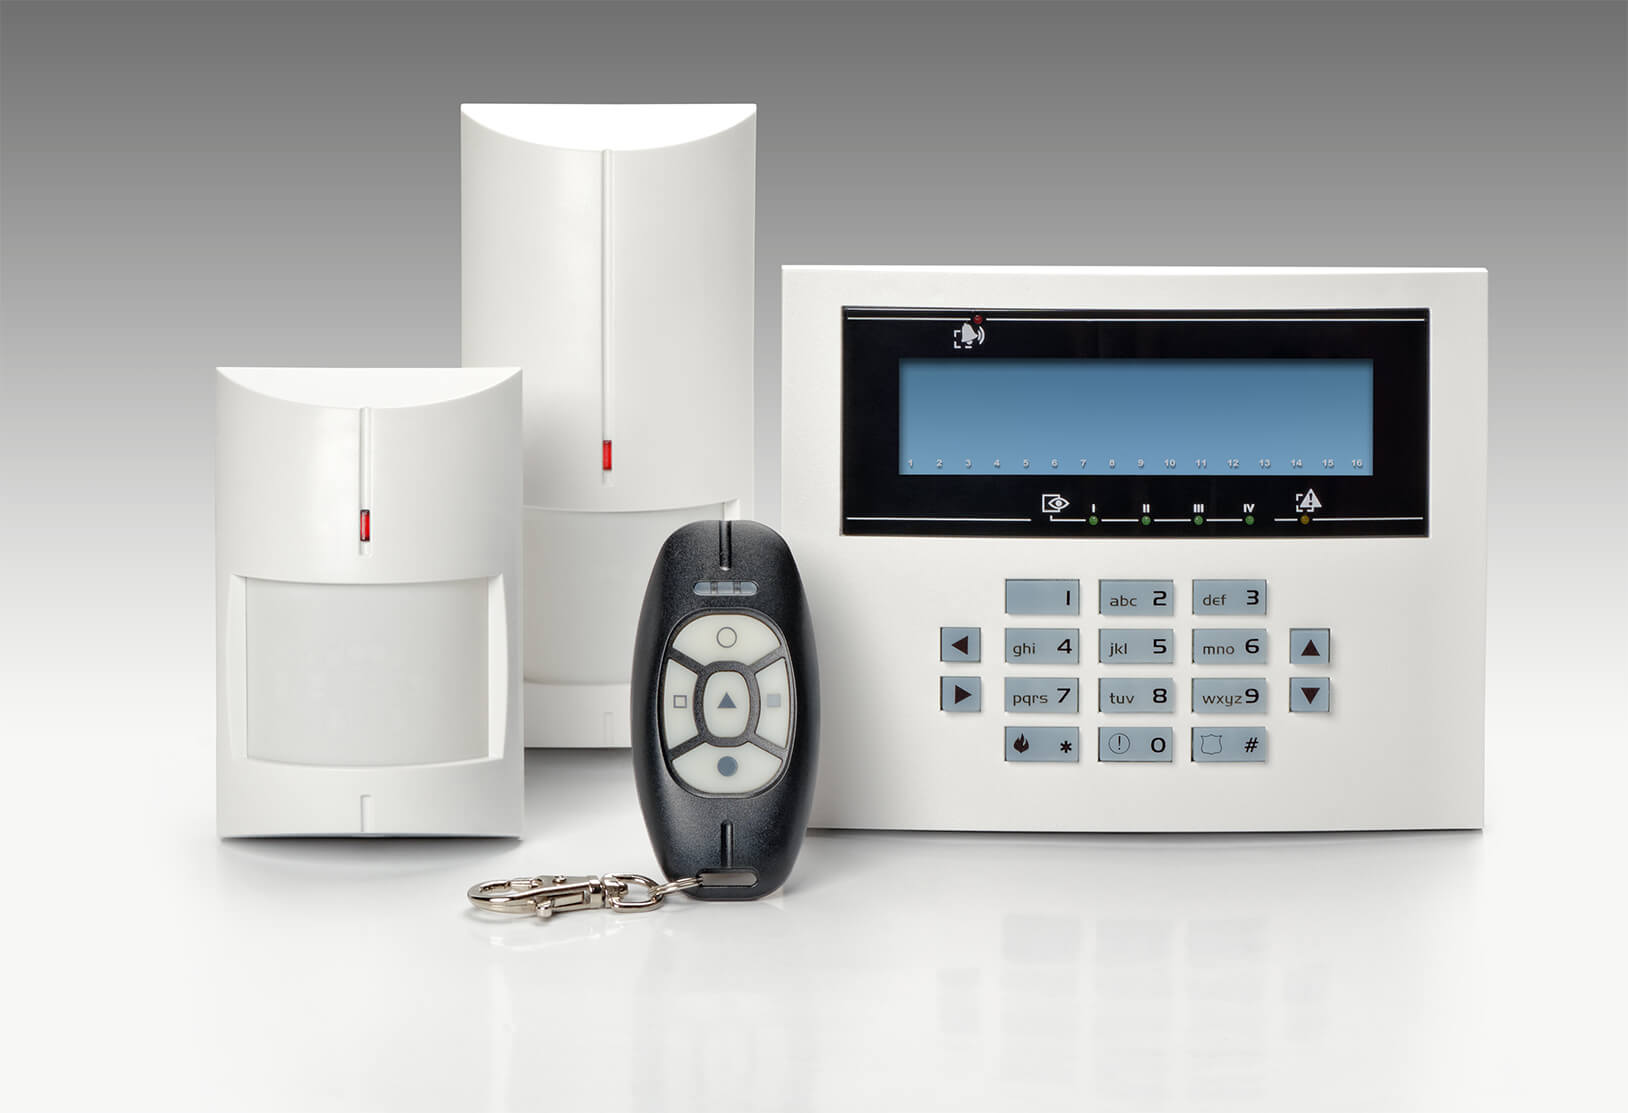 Business & Residential NACOSS Approved Burglar Alarms In St. John's Wood NW8 - Local St. John's Wood NW8 security company.Call 02078872244 - Dedicated to Safety & Security. Companies, shops and homes ..